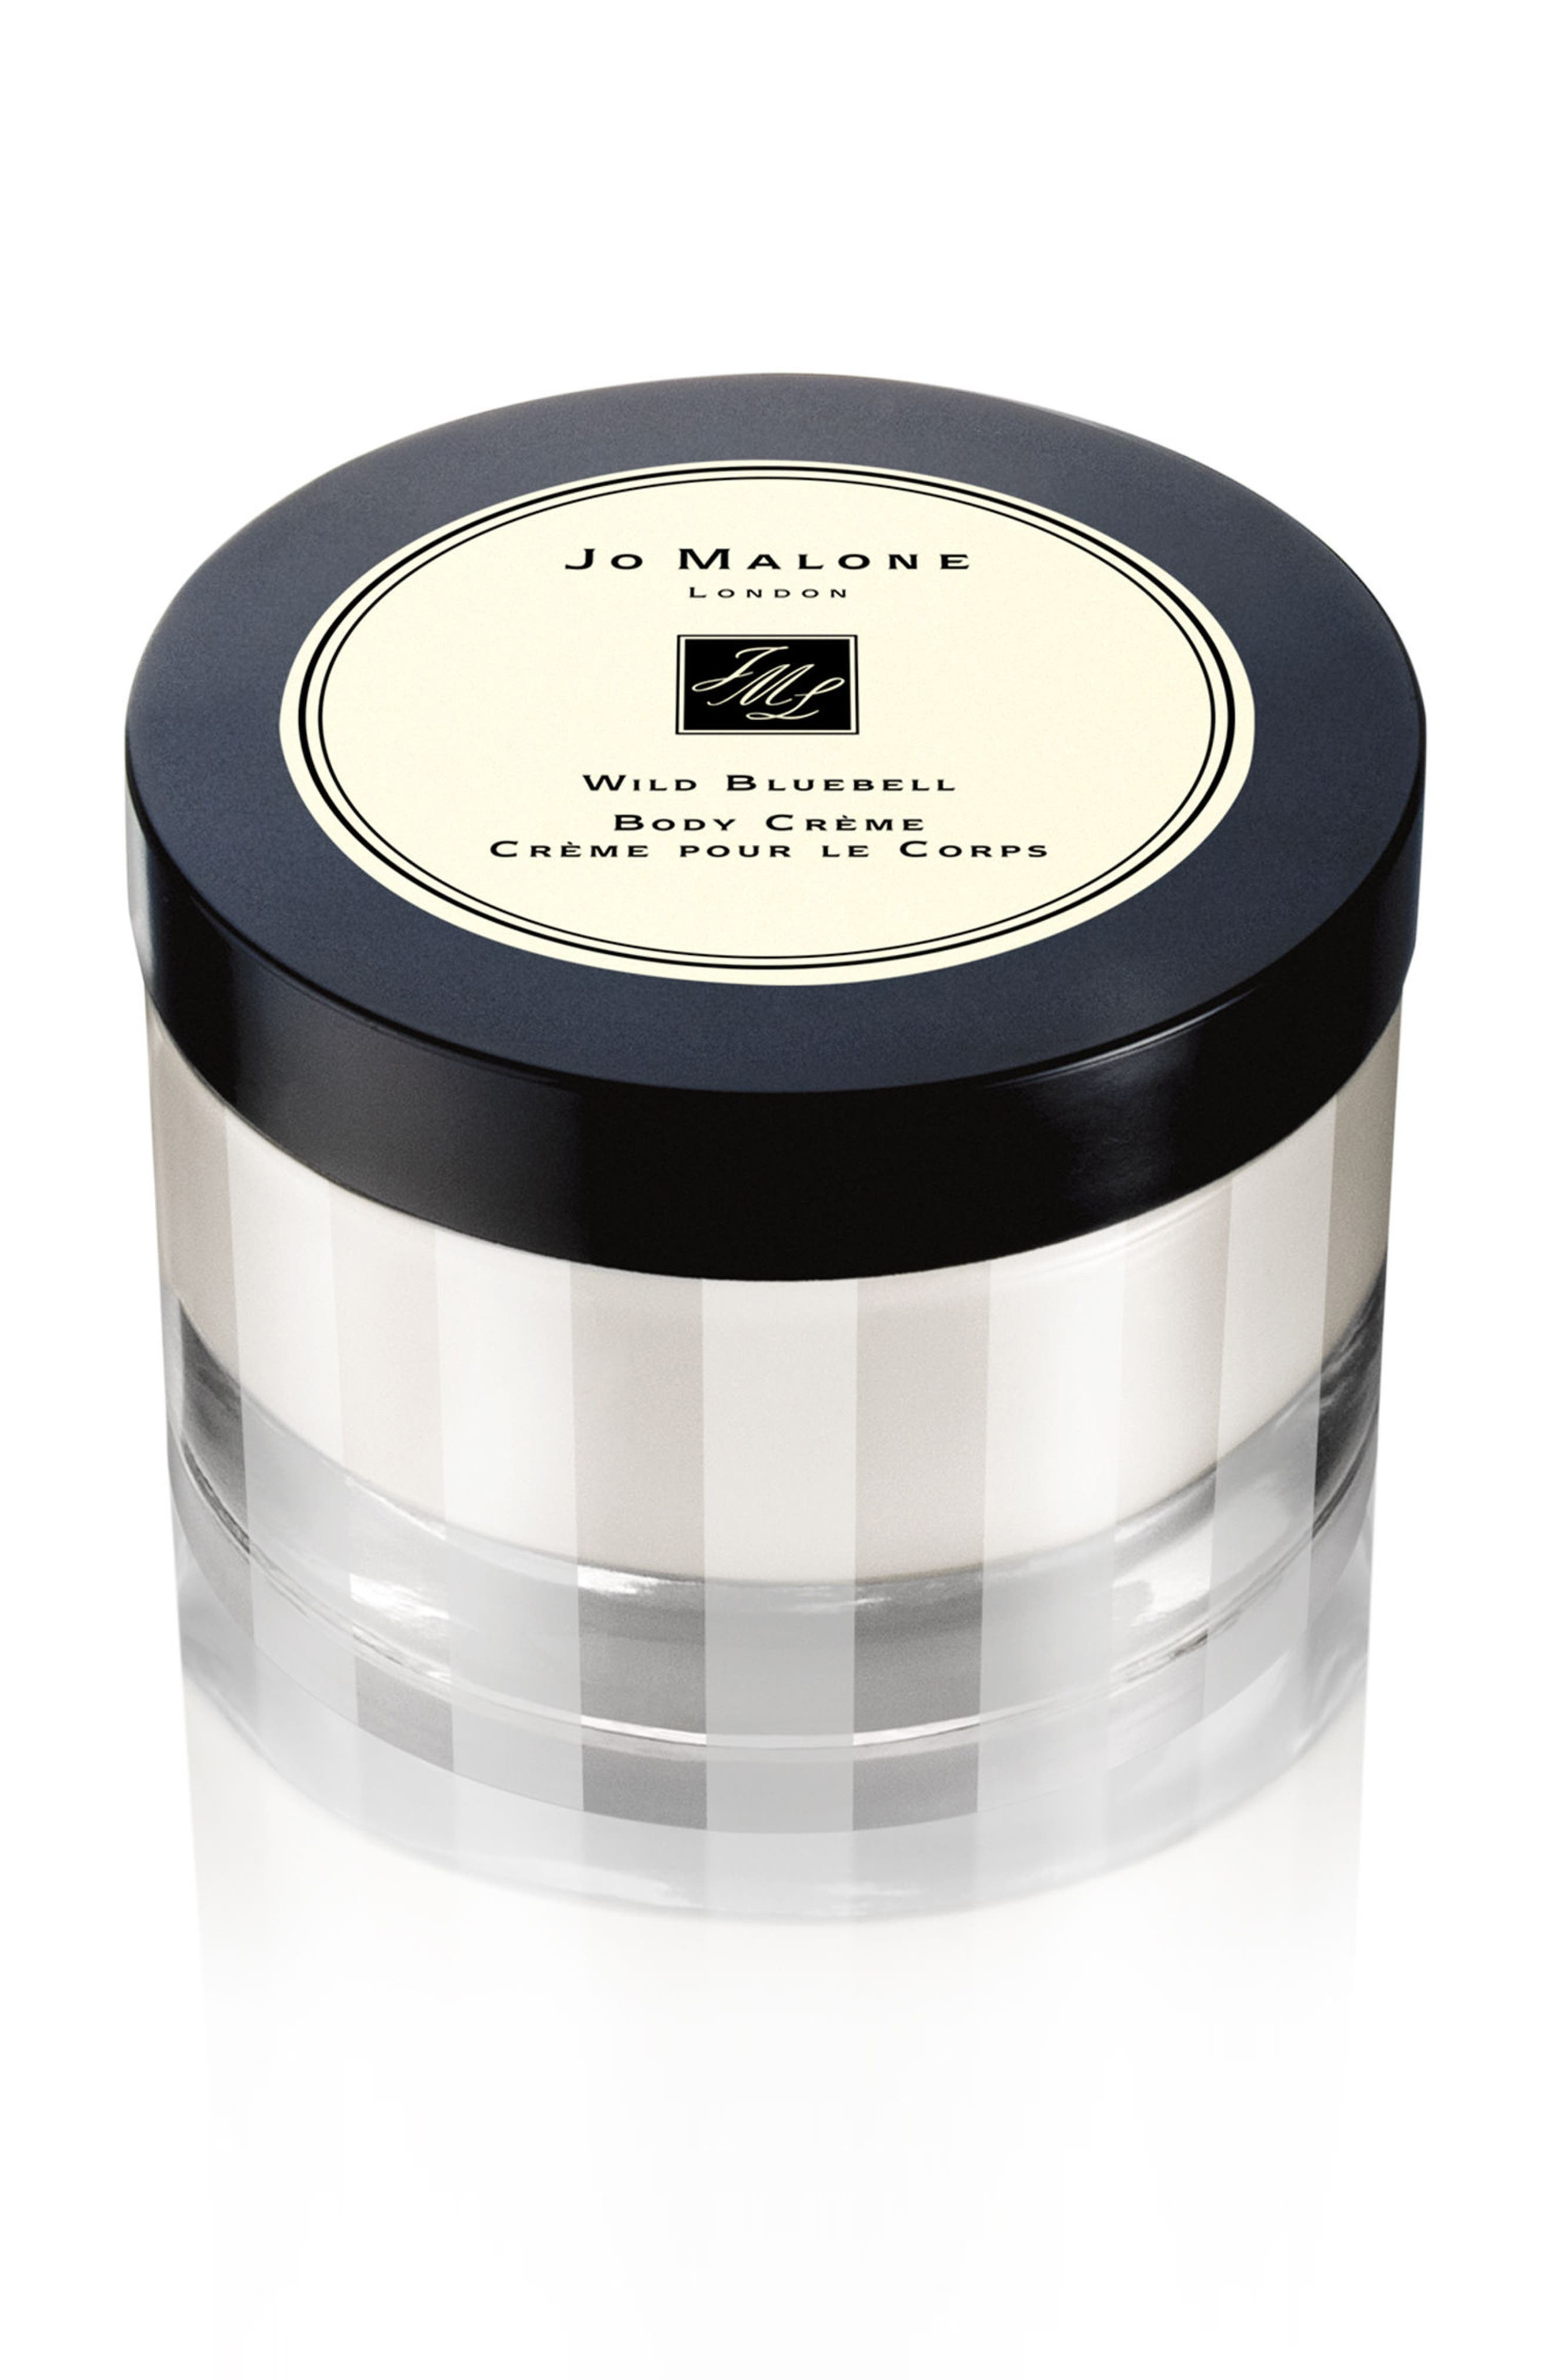 Alternate Image 1 Selected - Jo Malone London™ 'Wild Bluebell' Body Crème